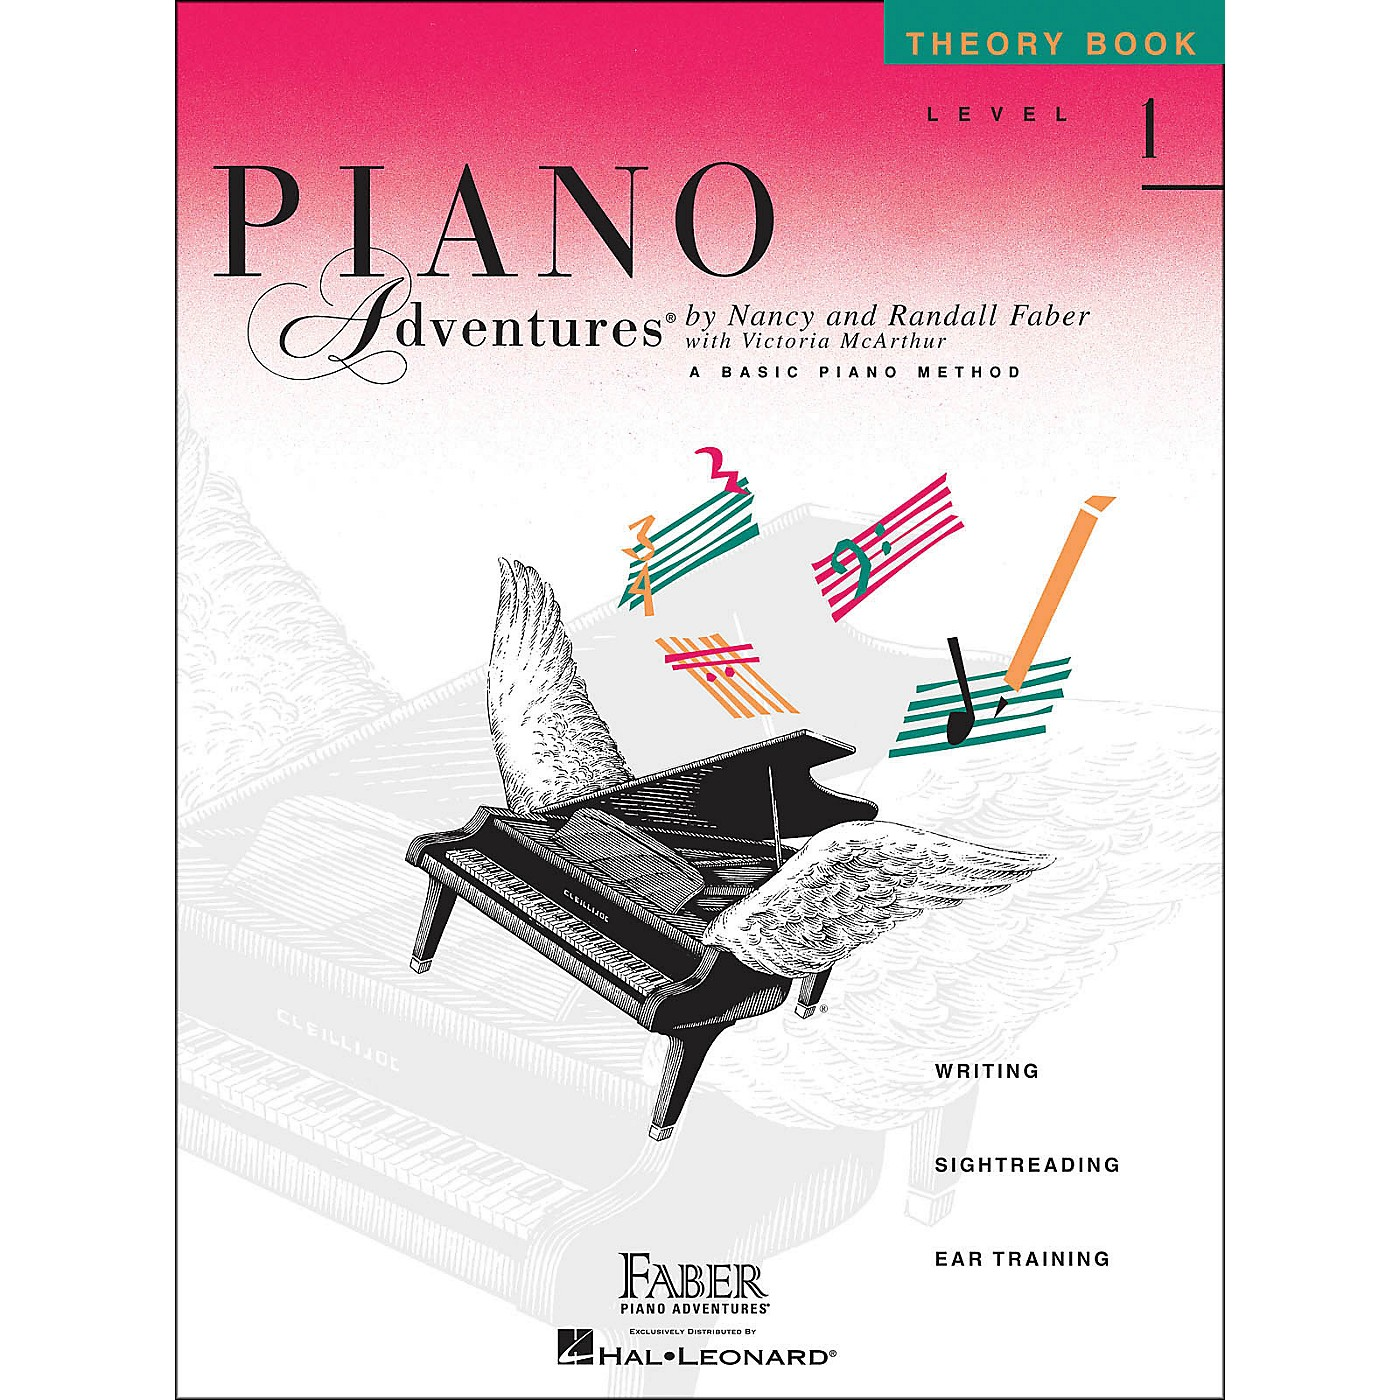 Faber Piano Adventures Piano Adventures Theory Book Level 1 thumbnail